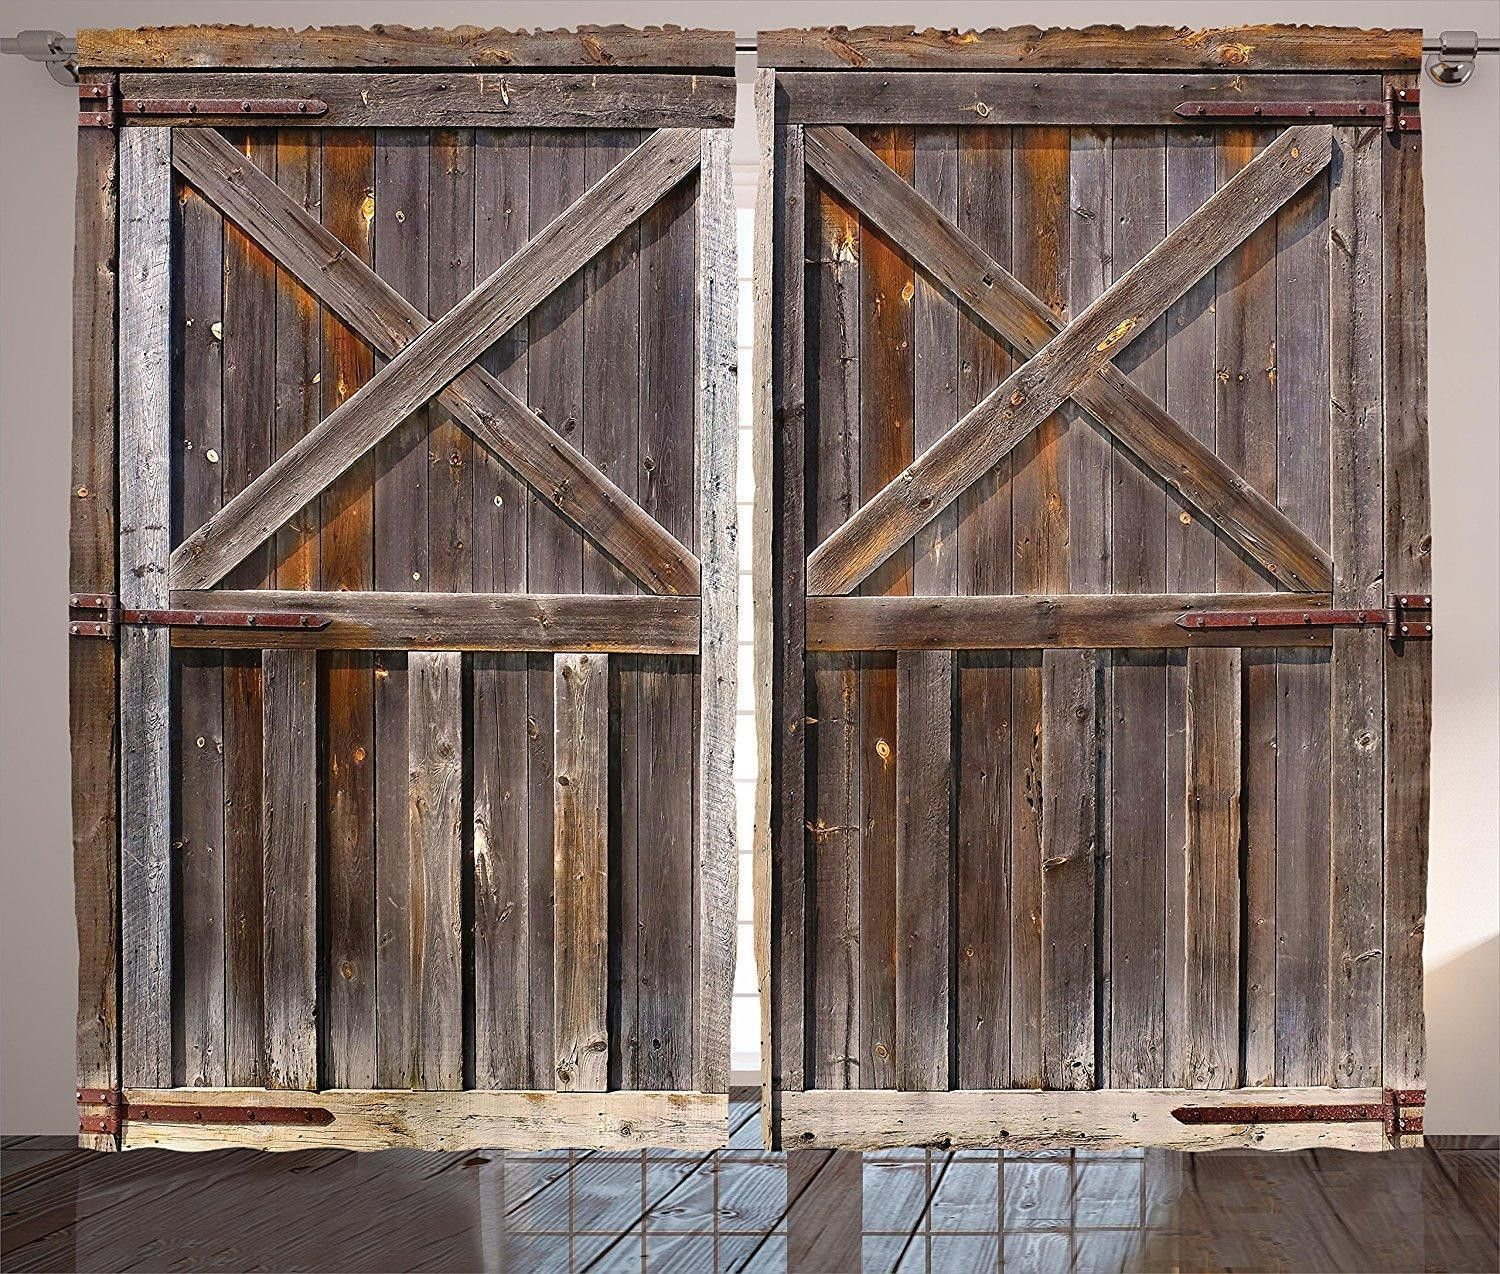 Awesome Rustic Farmhouse Old Wooden Barn Doors Curtains With Country Shabby Decor